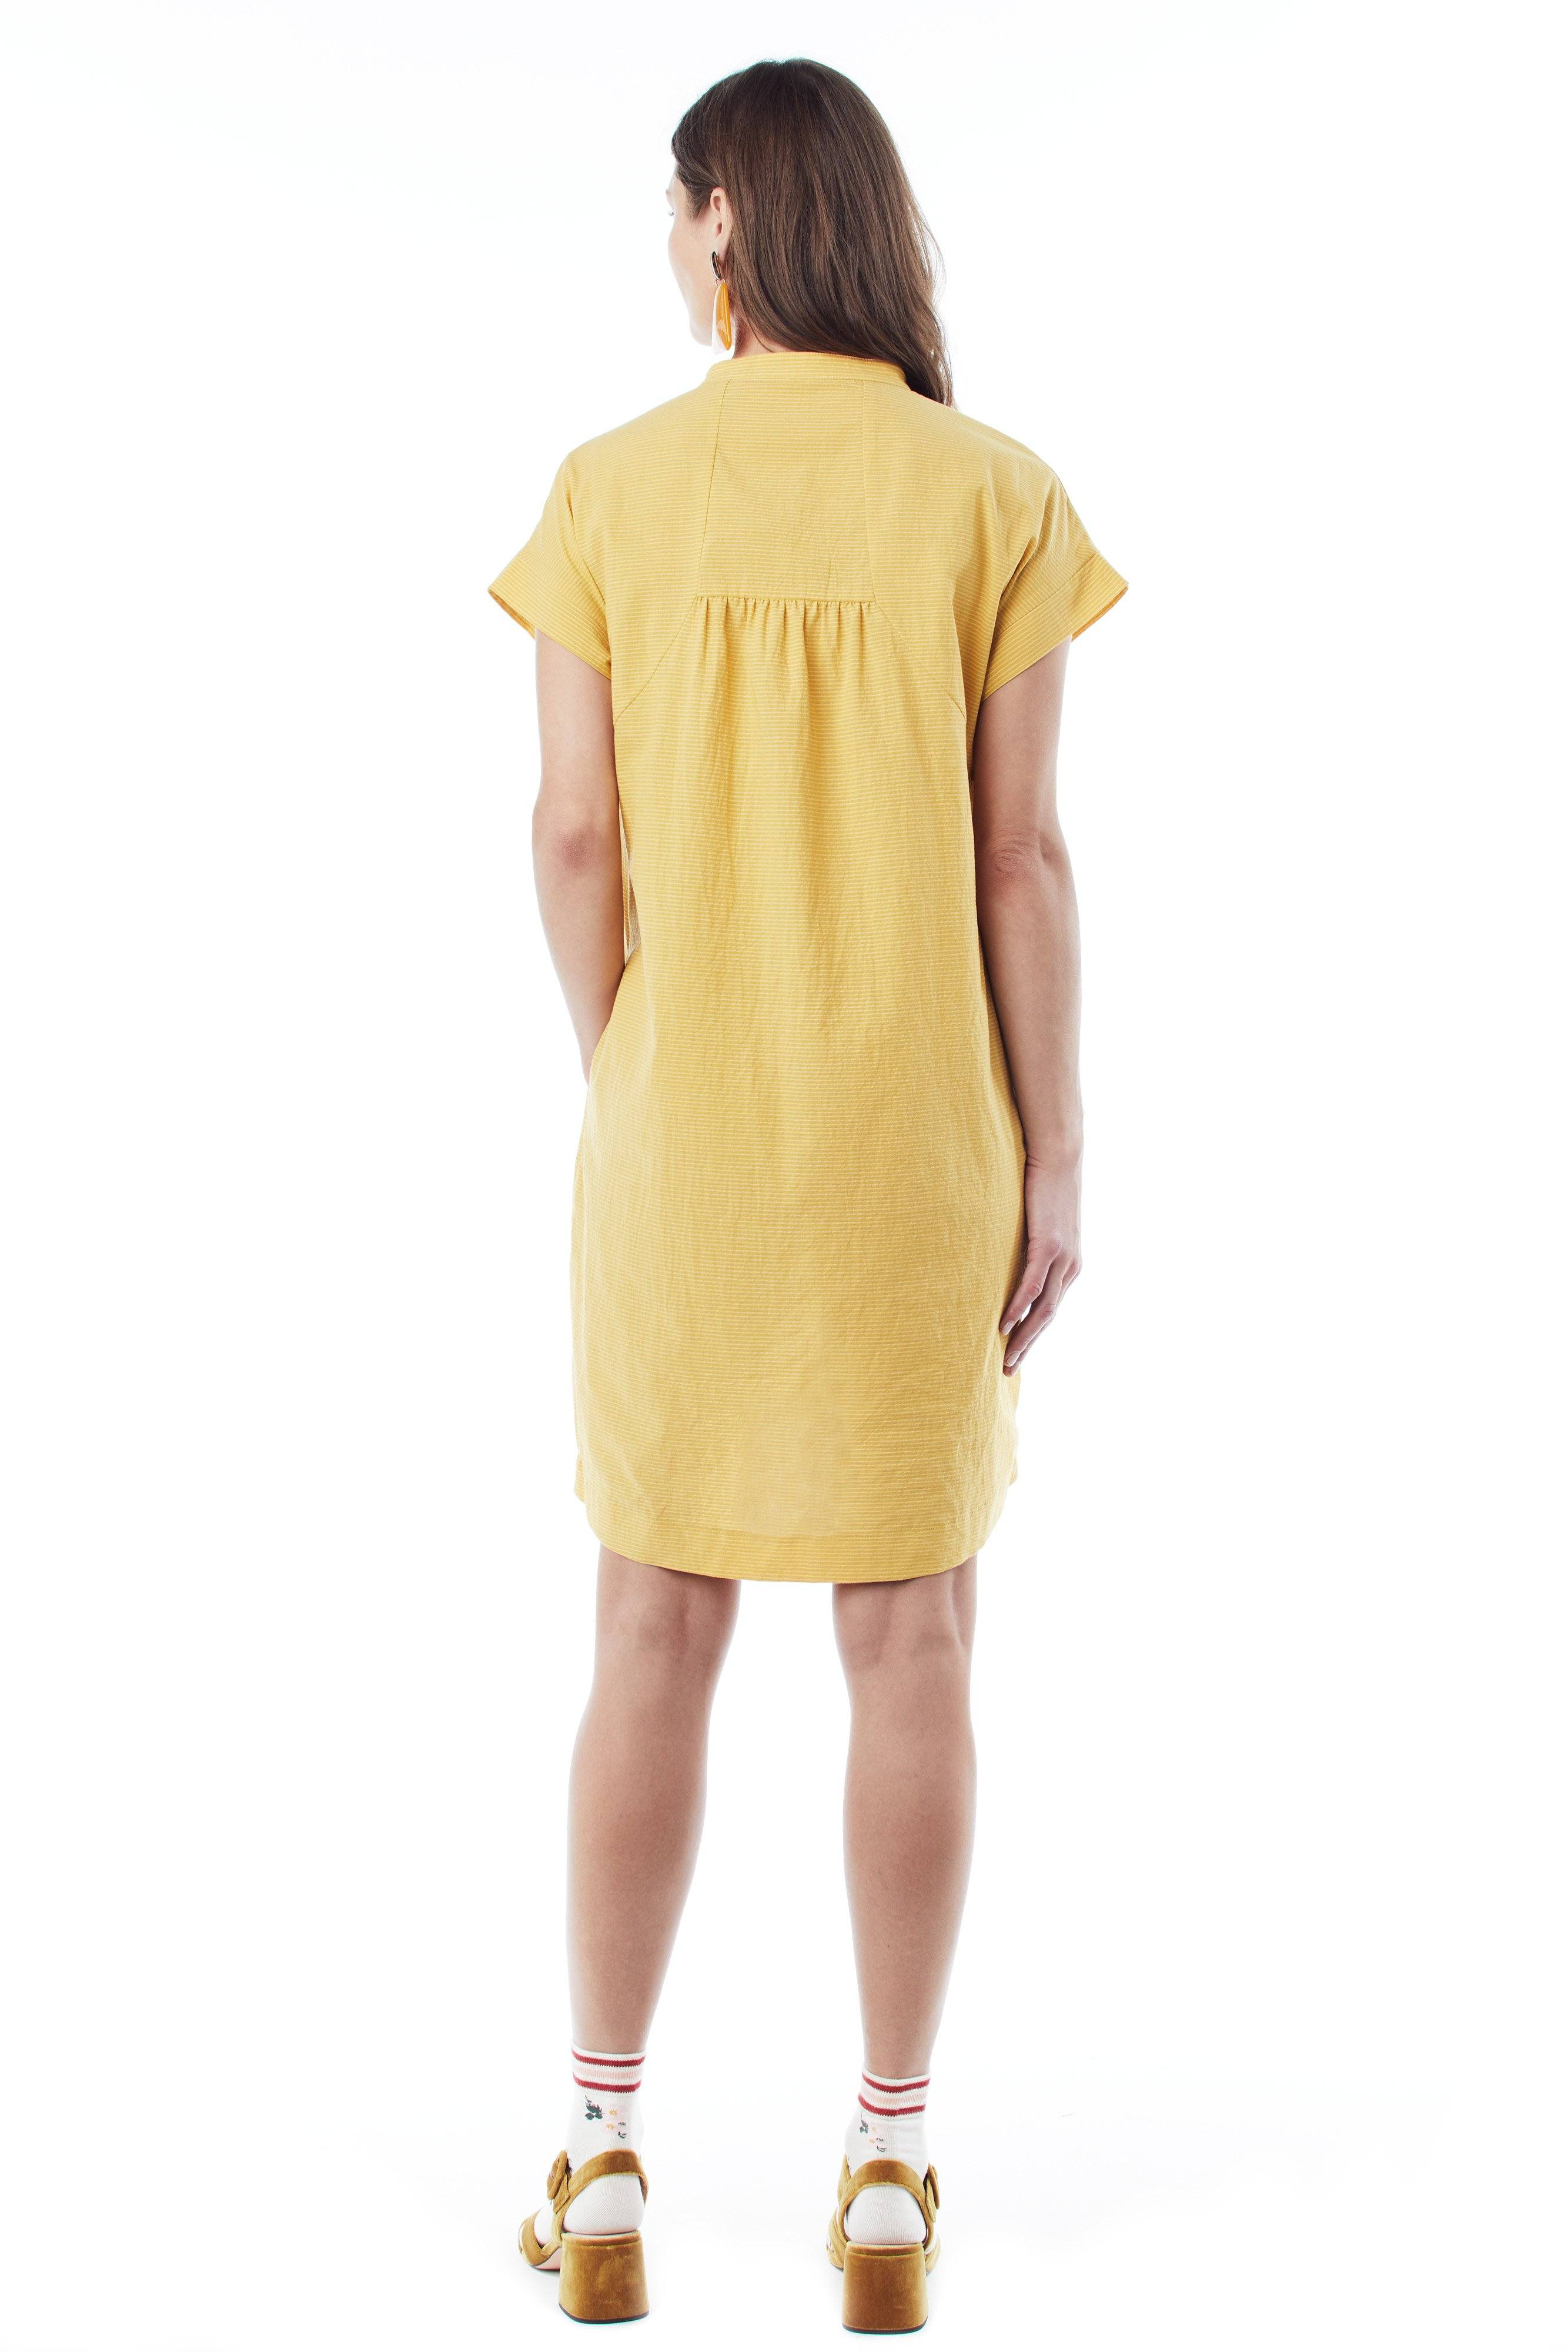 d19f9245b5f21 ... Meet Cybelle: Our Yellow Short-Sleeve Maternity Dress short sleeve dress  Loyal Hana